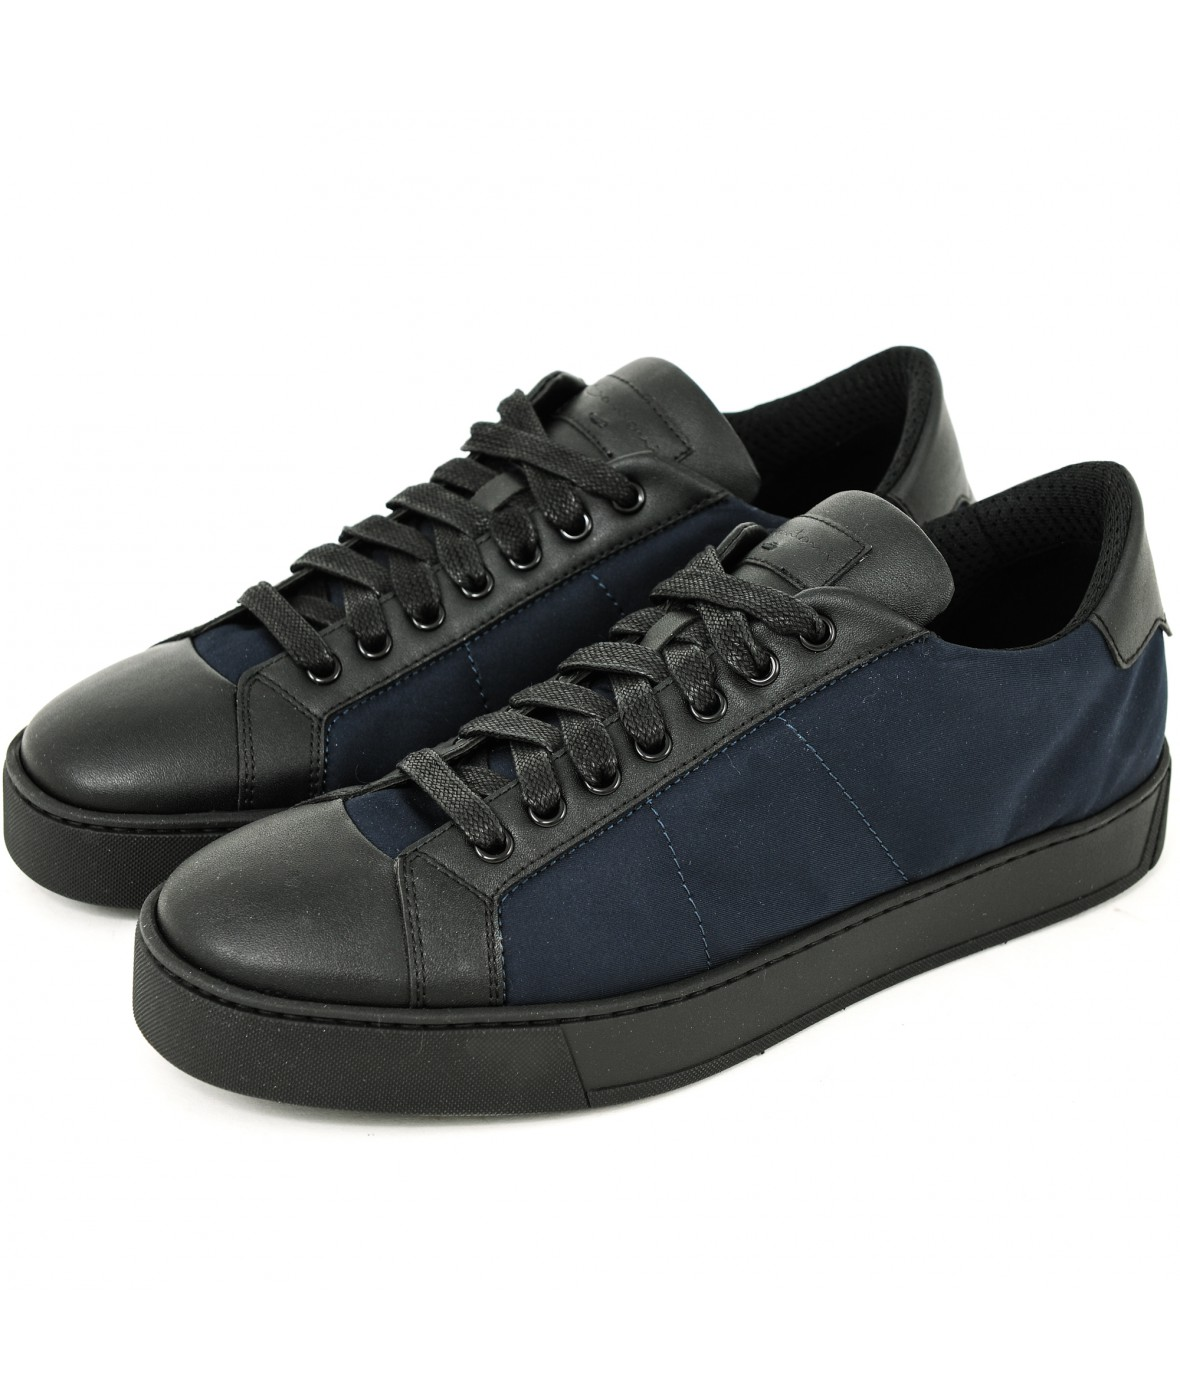 Santoni Rethink low  darkblue (33413)